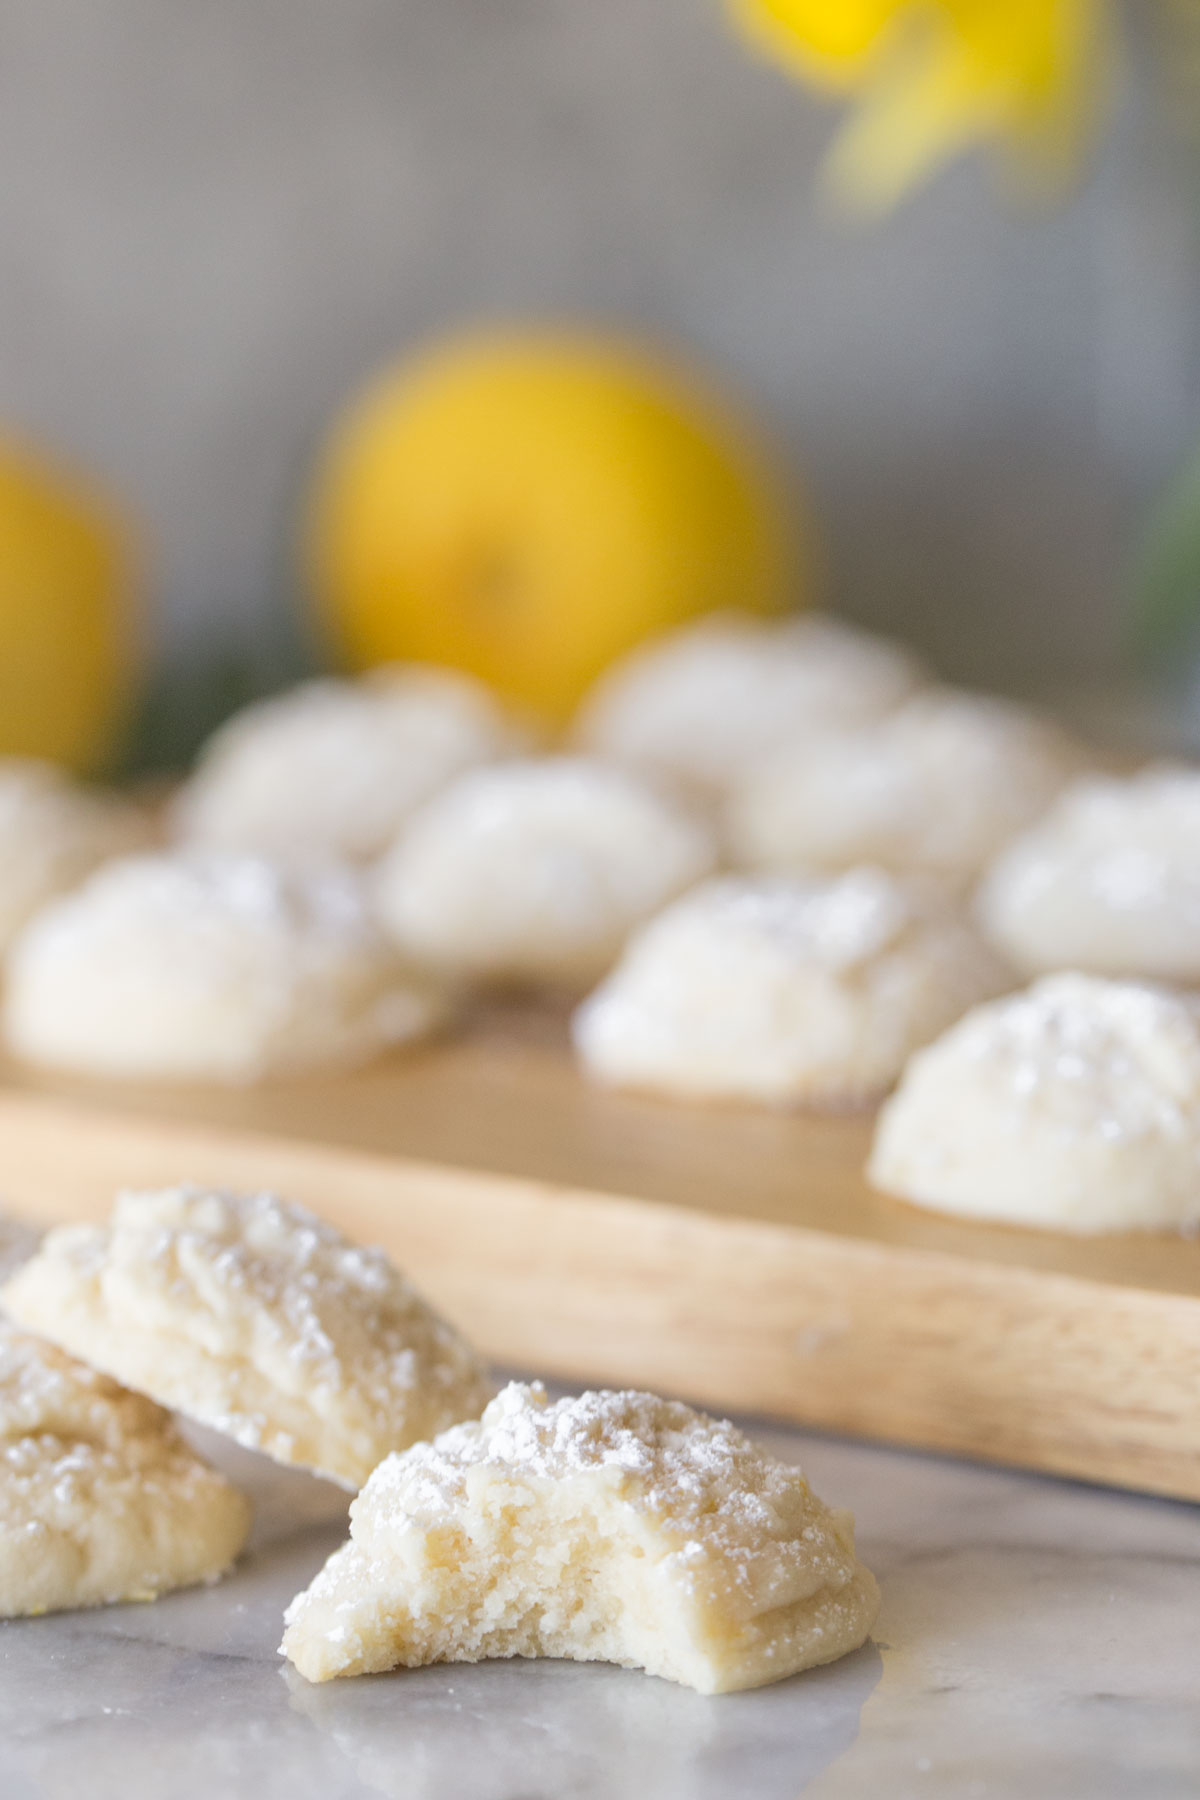 Close up shot of inside texture of Lemon Cookies.